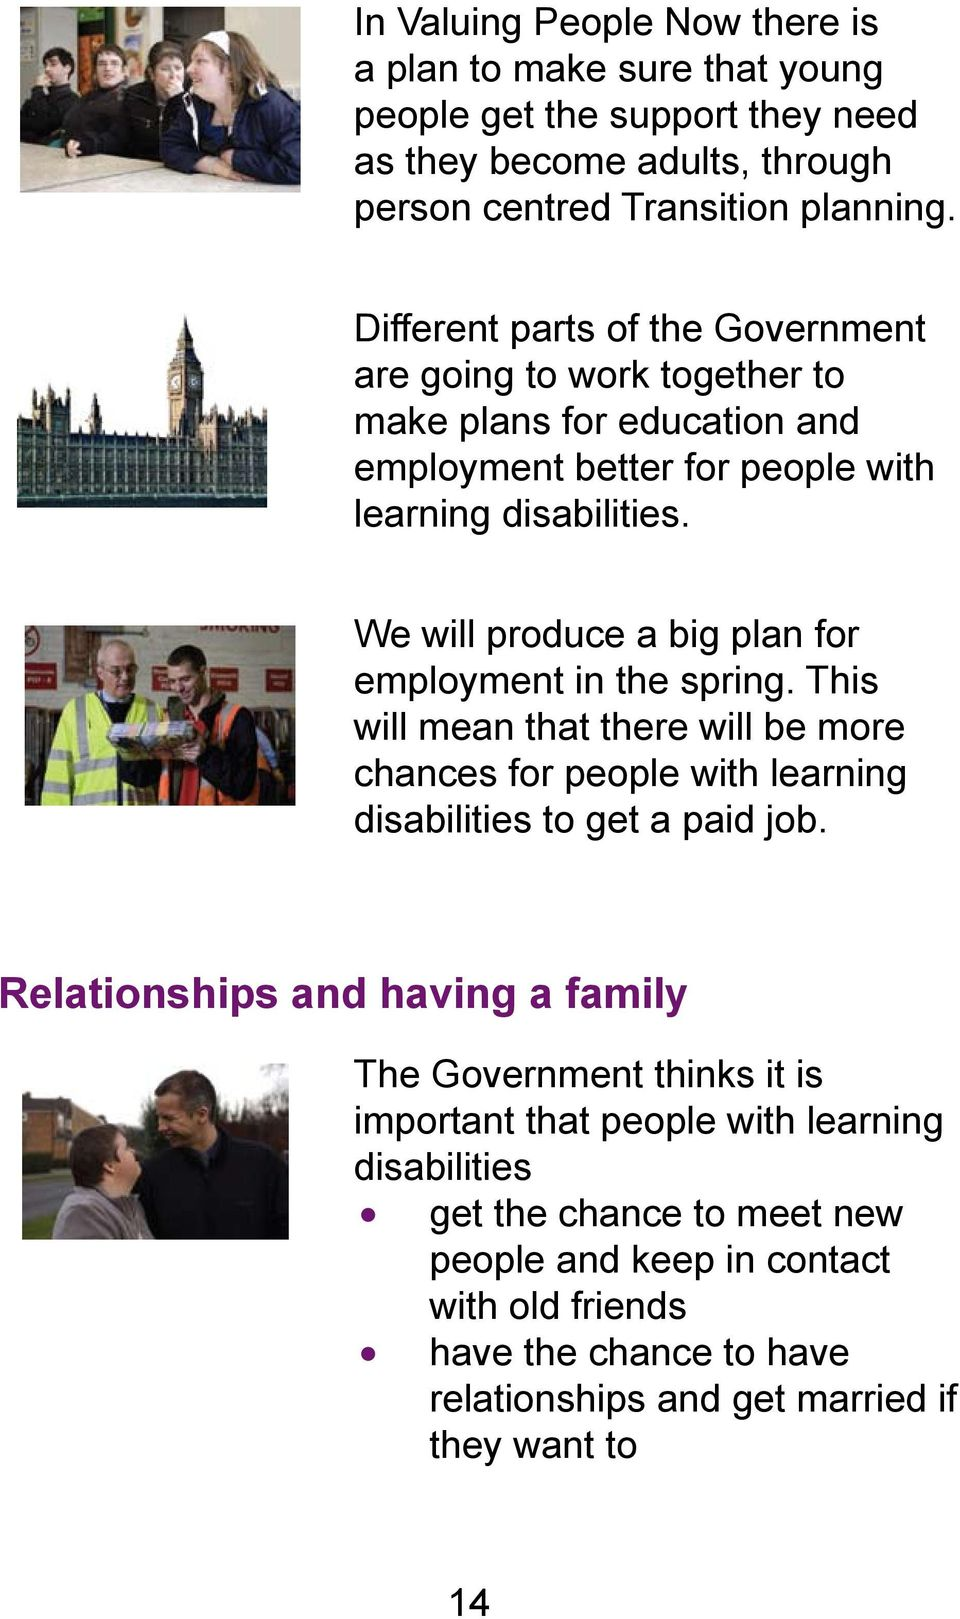 We will produce a big plan for employment in the spring. This will mean that there will be more chances for people with learning disabilities to get a paid job.